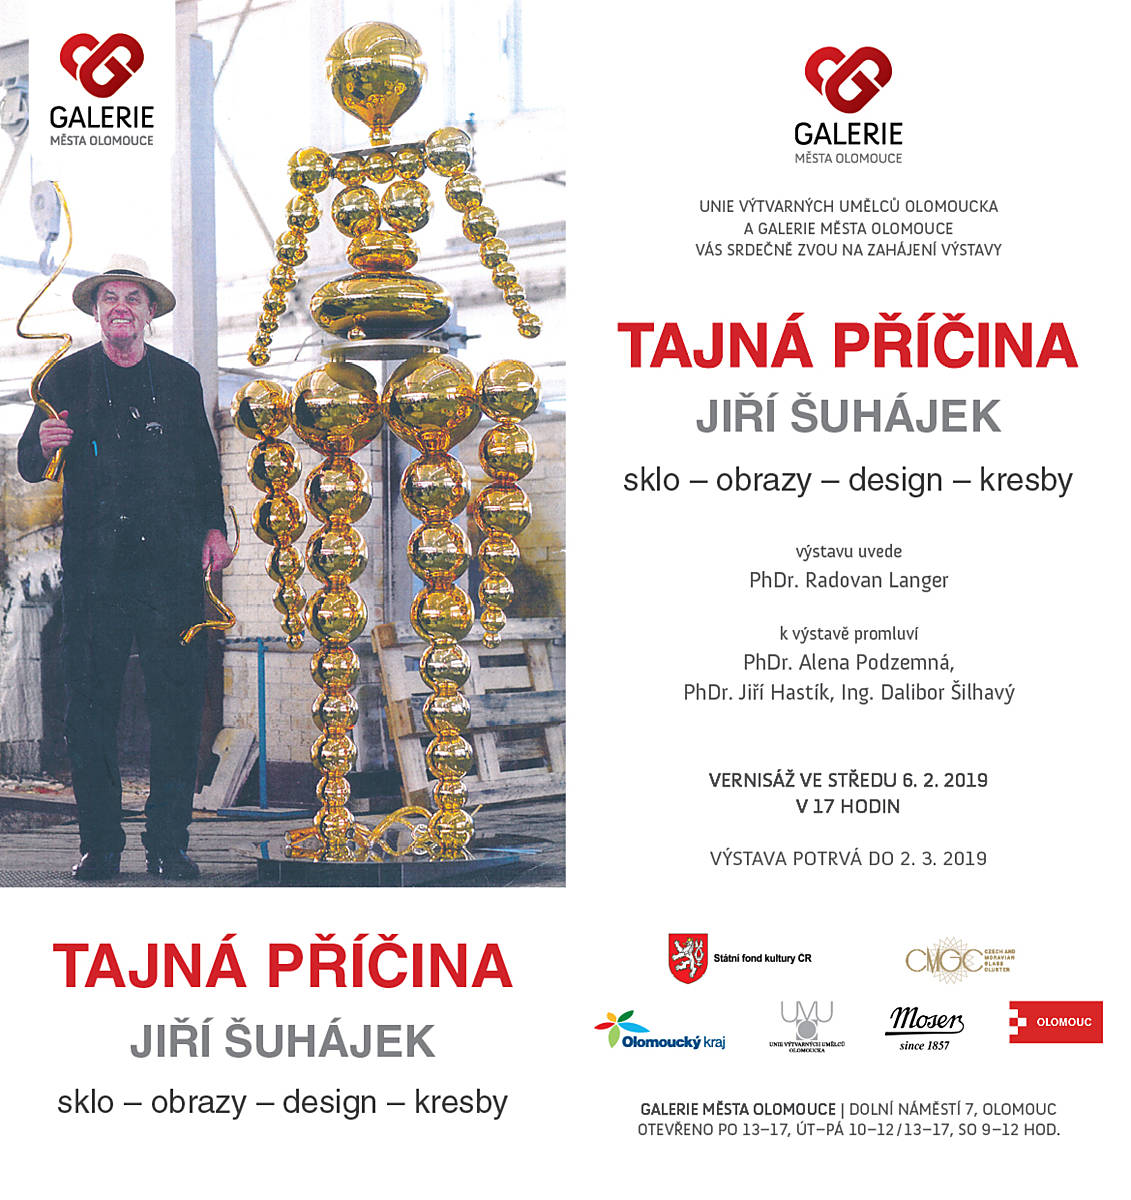 JIŘÍ ŠUHÁJEK: Exhibition in The Municipal Gallery of the town of Olomouc, Czech Republic